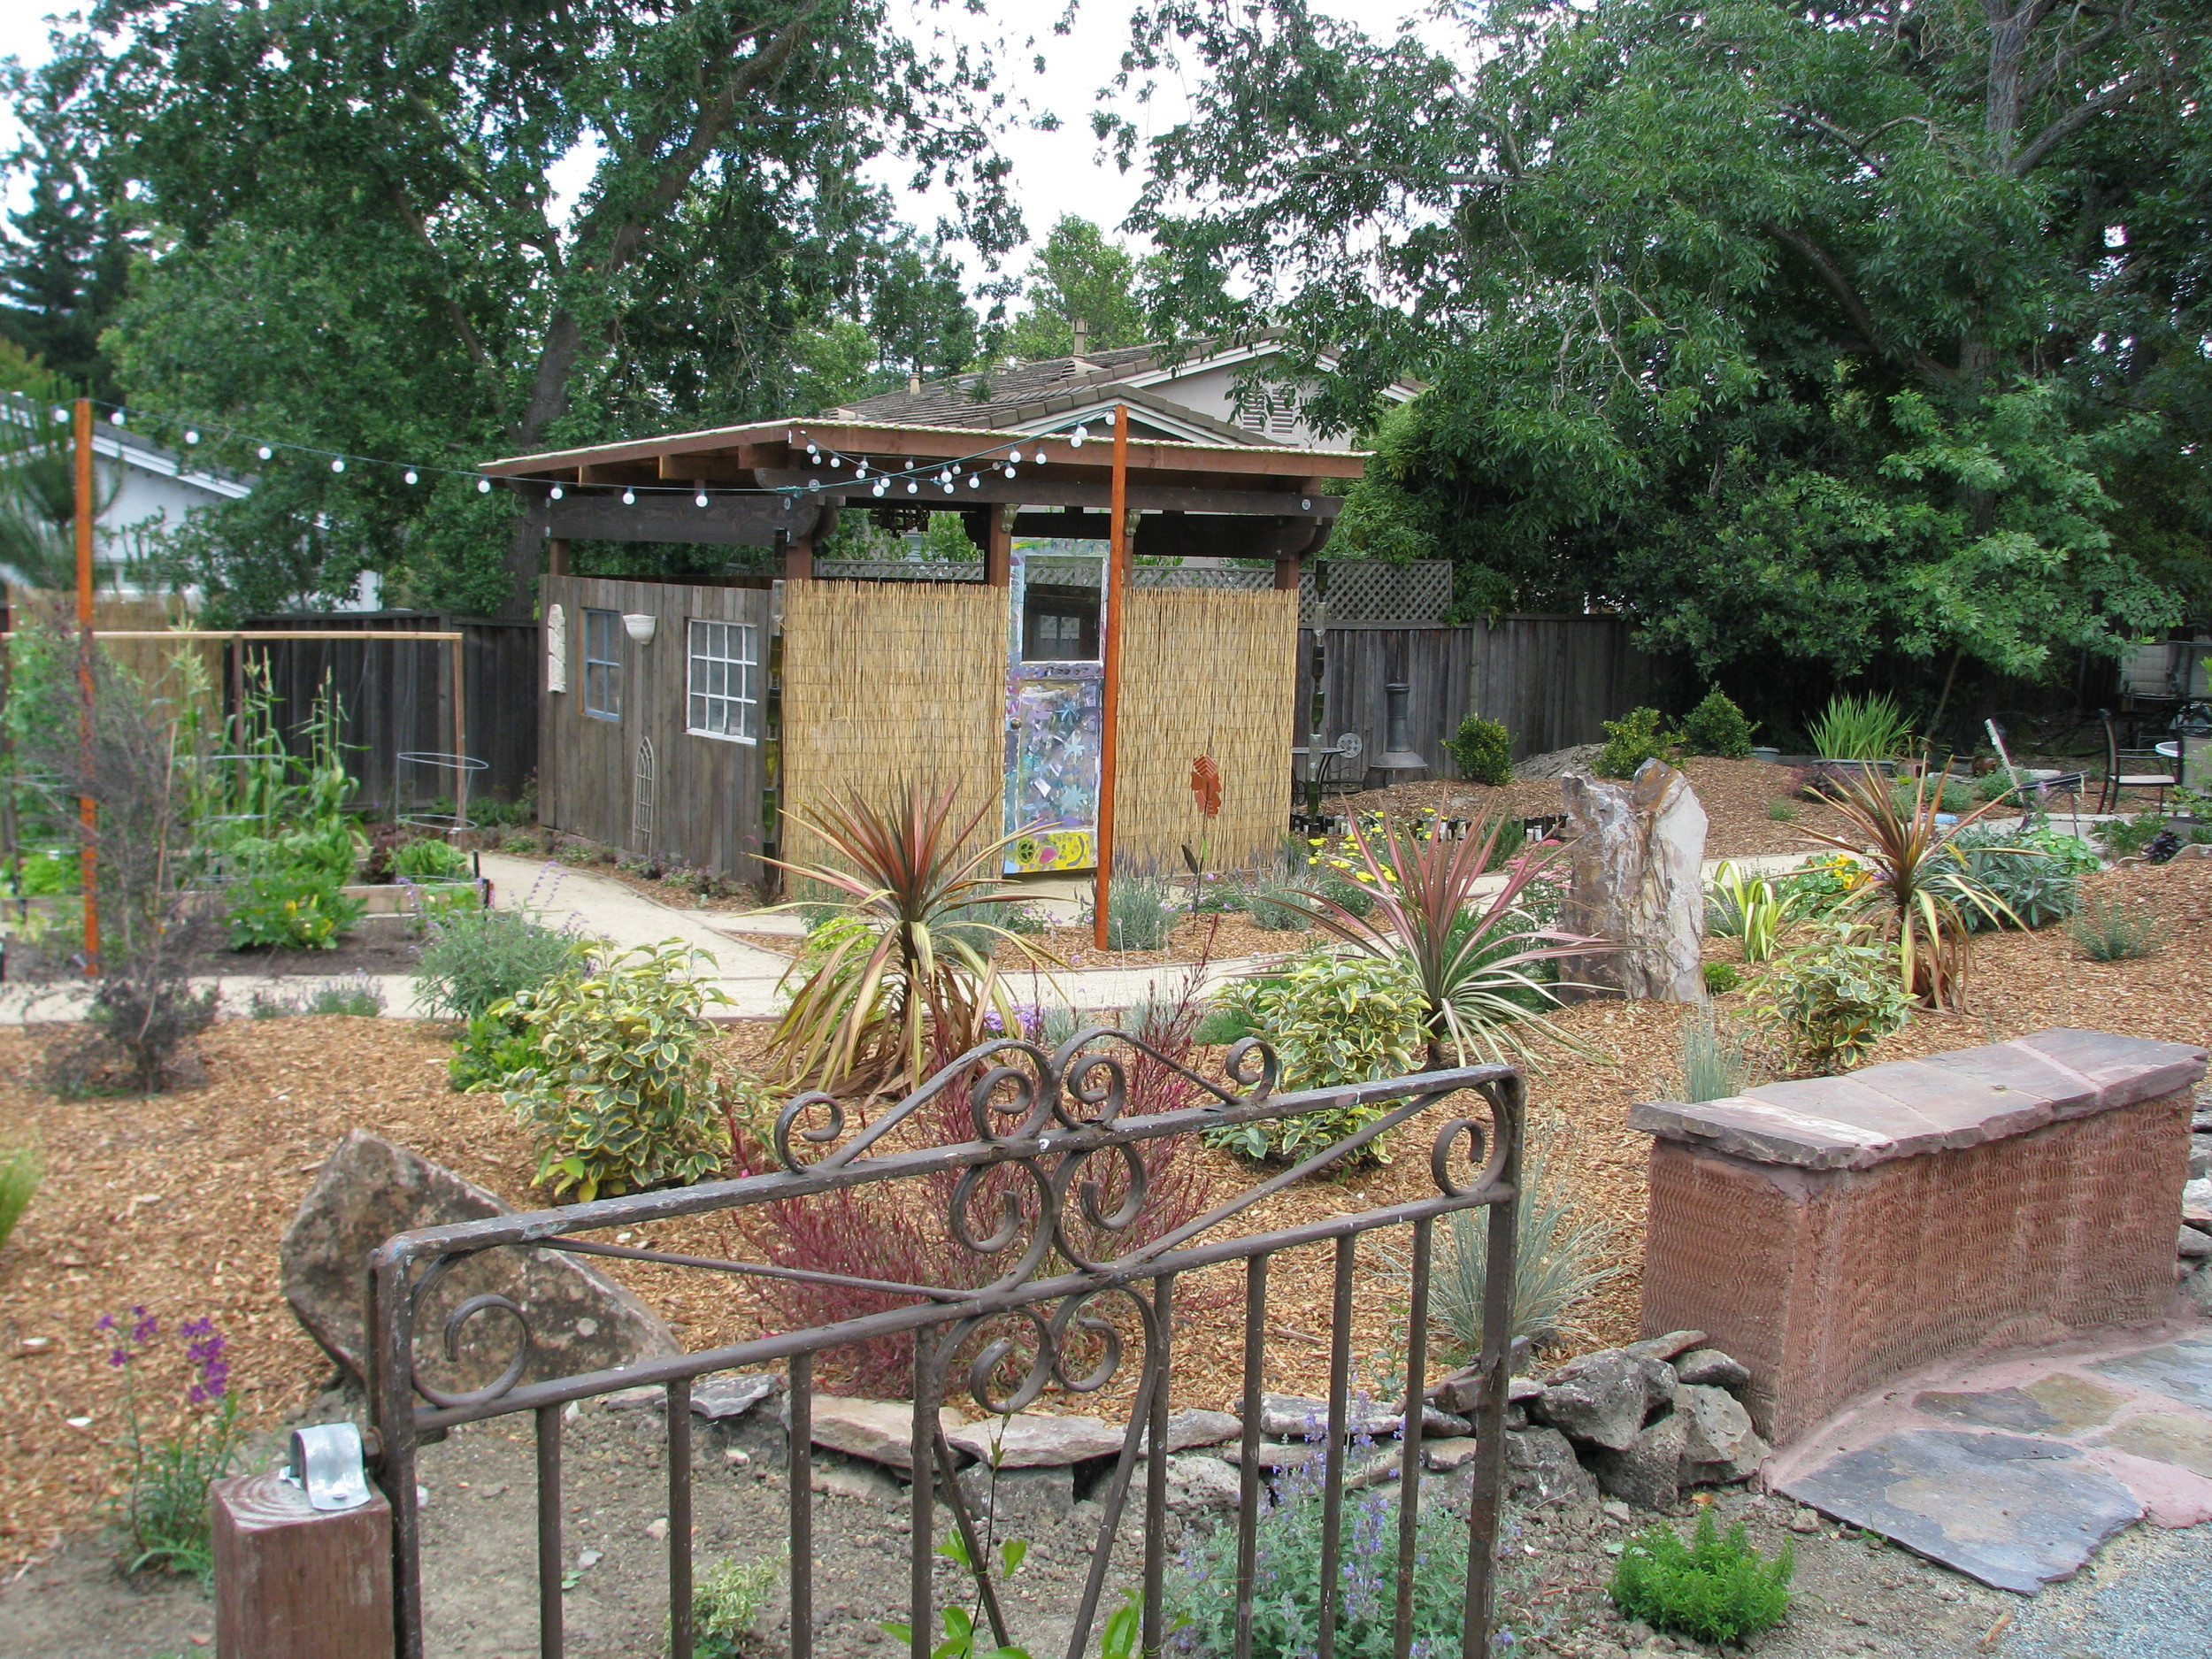 A hobby hut and sustainablegarden decor built with reclaimed materials!